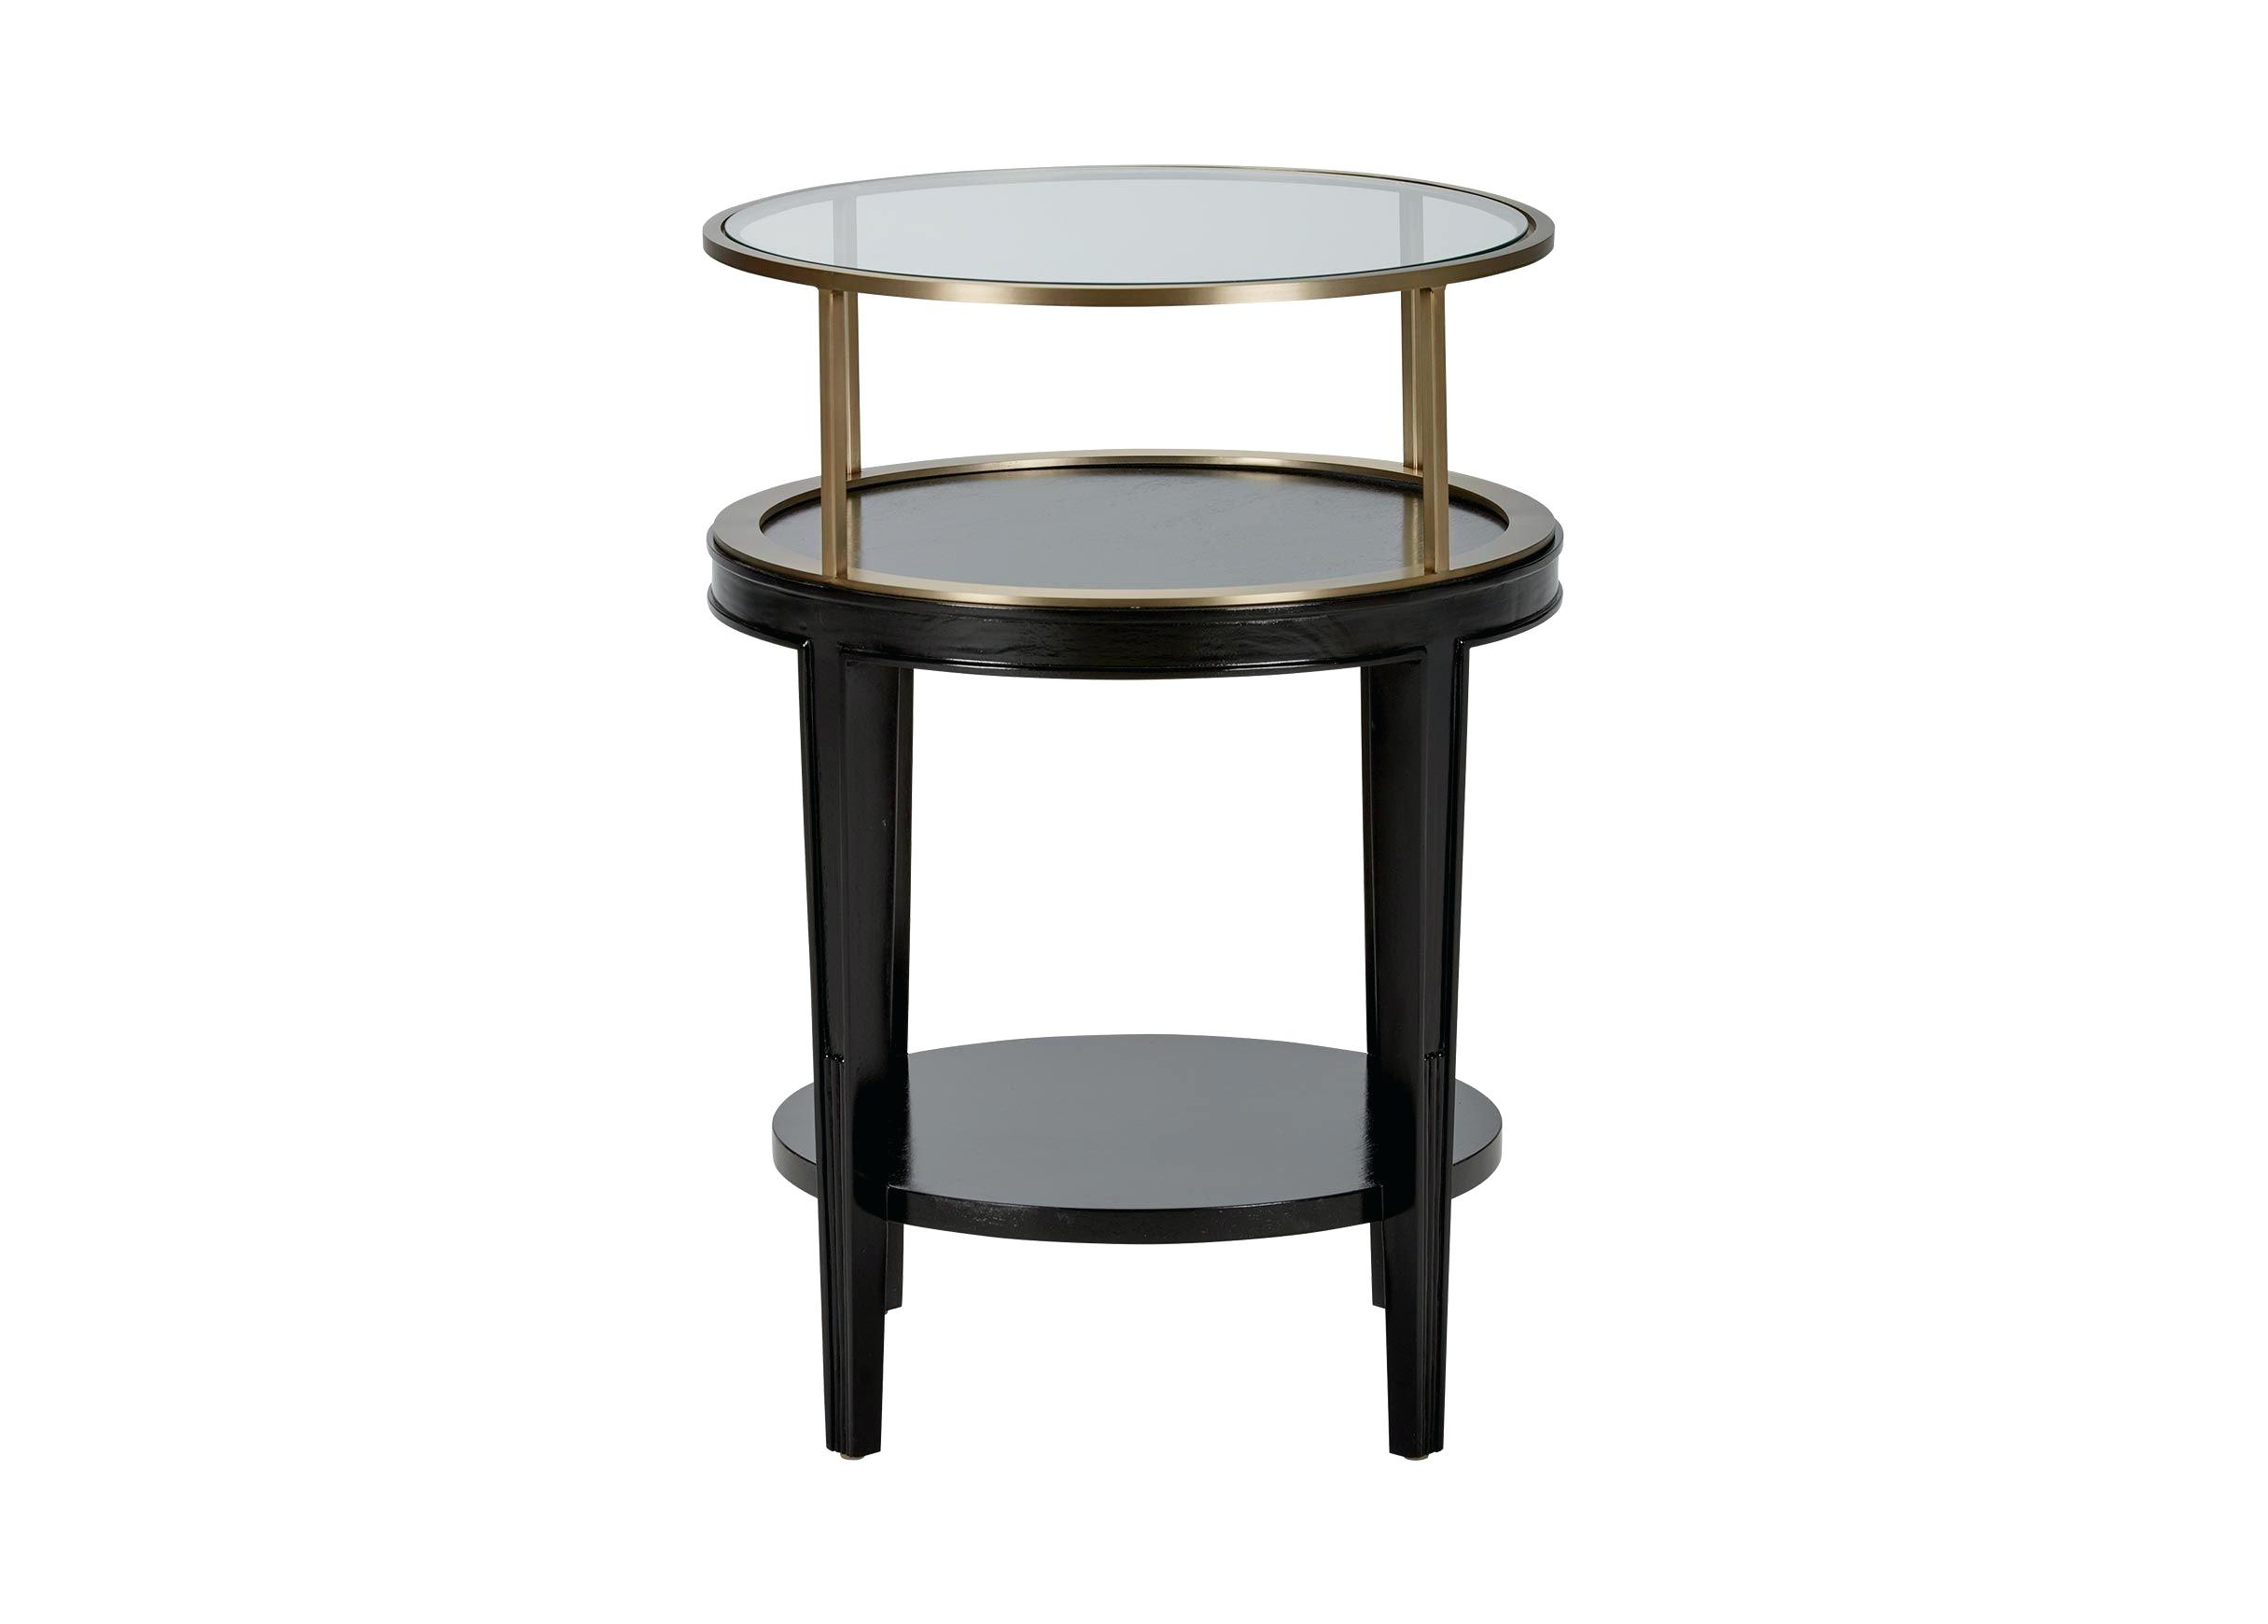 black accent tables for antique natural modena table with chairs winsome daniel drawer finish metal and wood round kitchen gorgeous white storage full size espresso furniture room